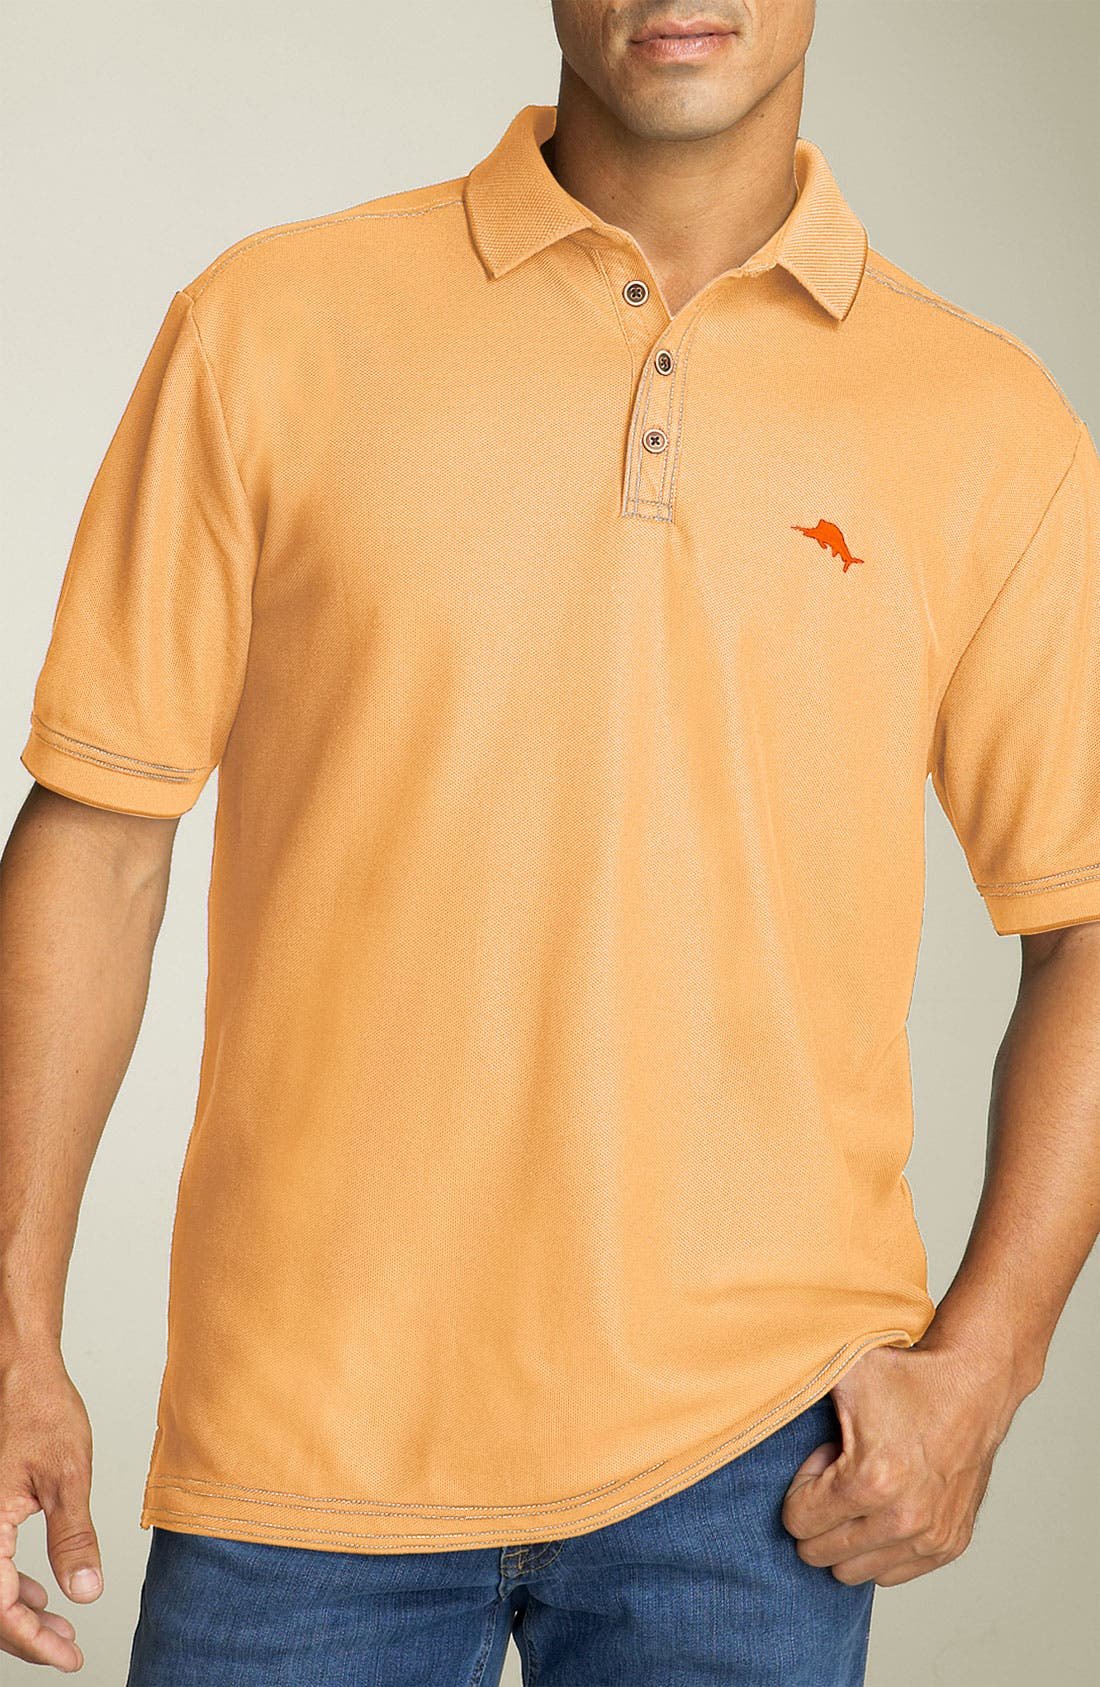 'The Emfielder' Original Fit Piqué Polo,                             Main thumbnail 112, color,